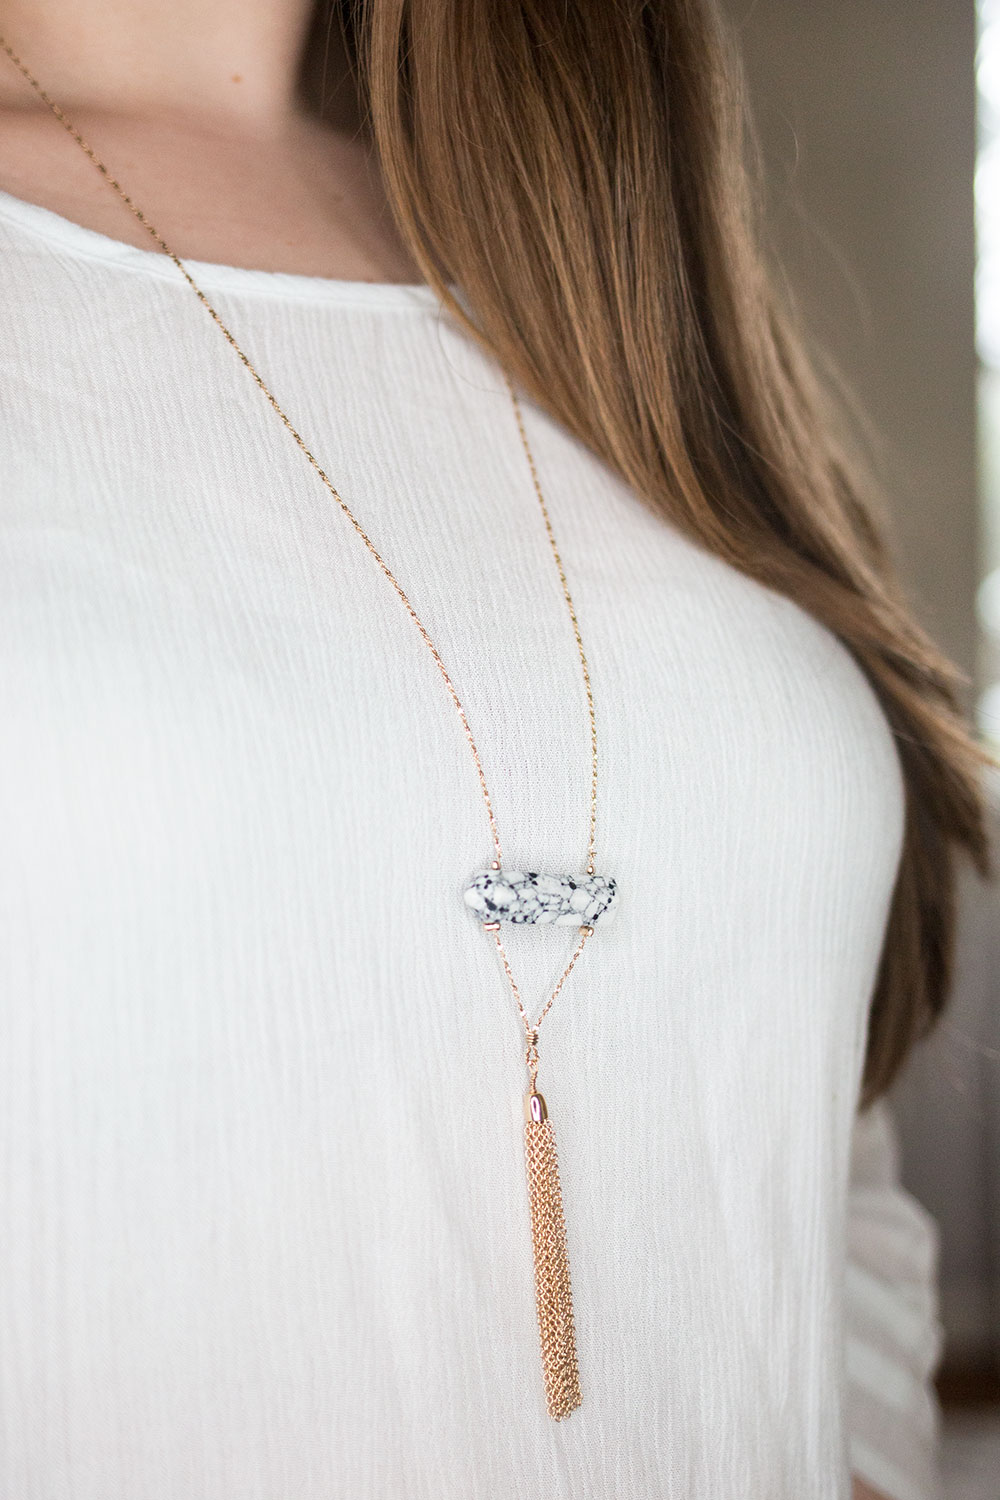 Stitch Fix March 2016 Review // Romolo Isaac Marble Stone Tassel Pendant Necklace // Hello Rigby Seattle Style & Fashion Blog